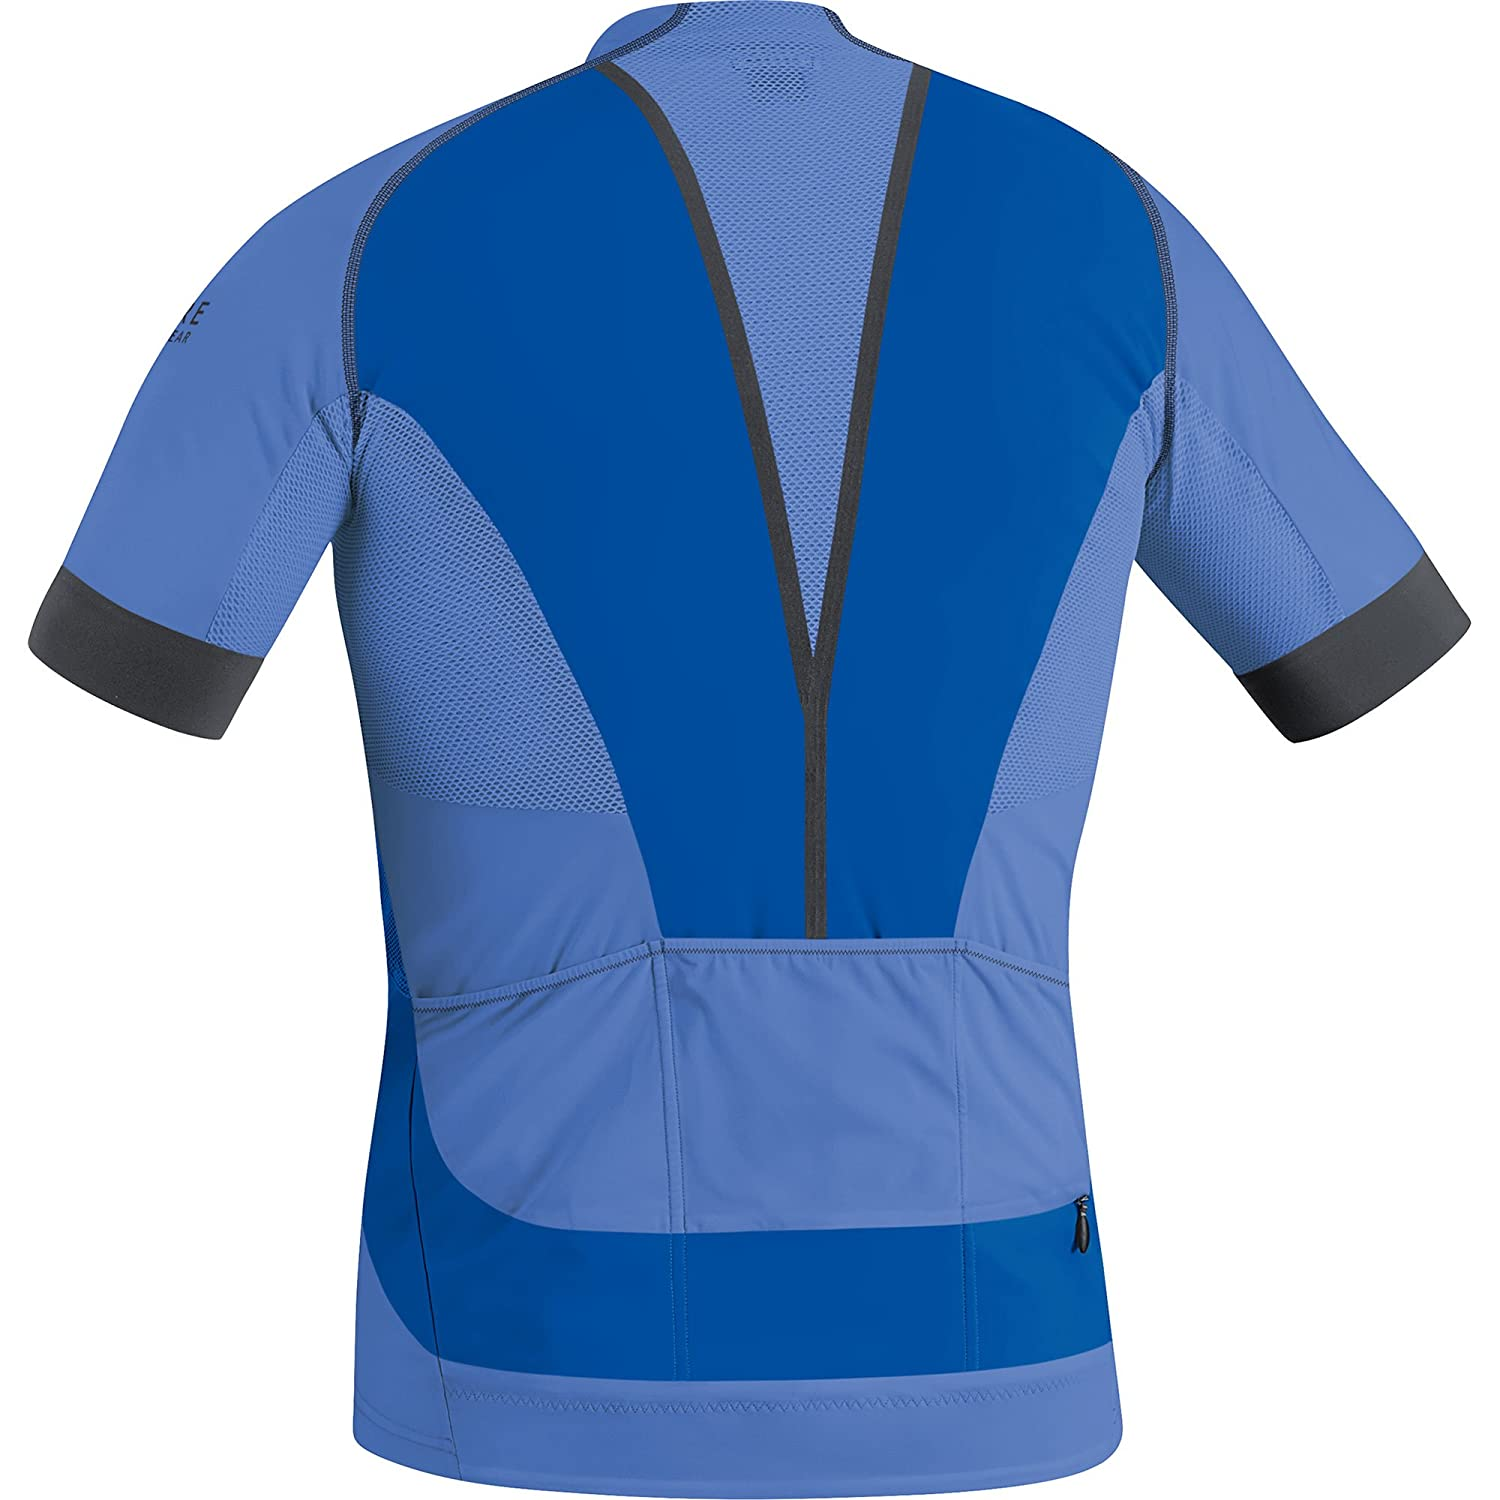 Gore Bike Gore Wear Herren Kurzarmtrikot Mountainbike, Super Leicht, Stretch, Gore Bike Selected Fabrics, Alp-X Pro Jersey, SPRALP a47923